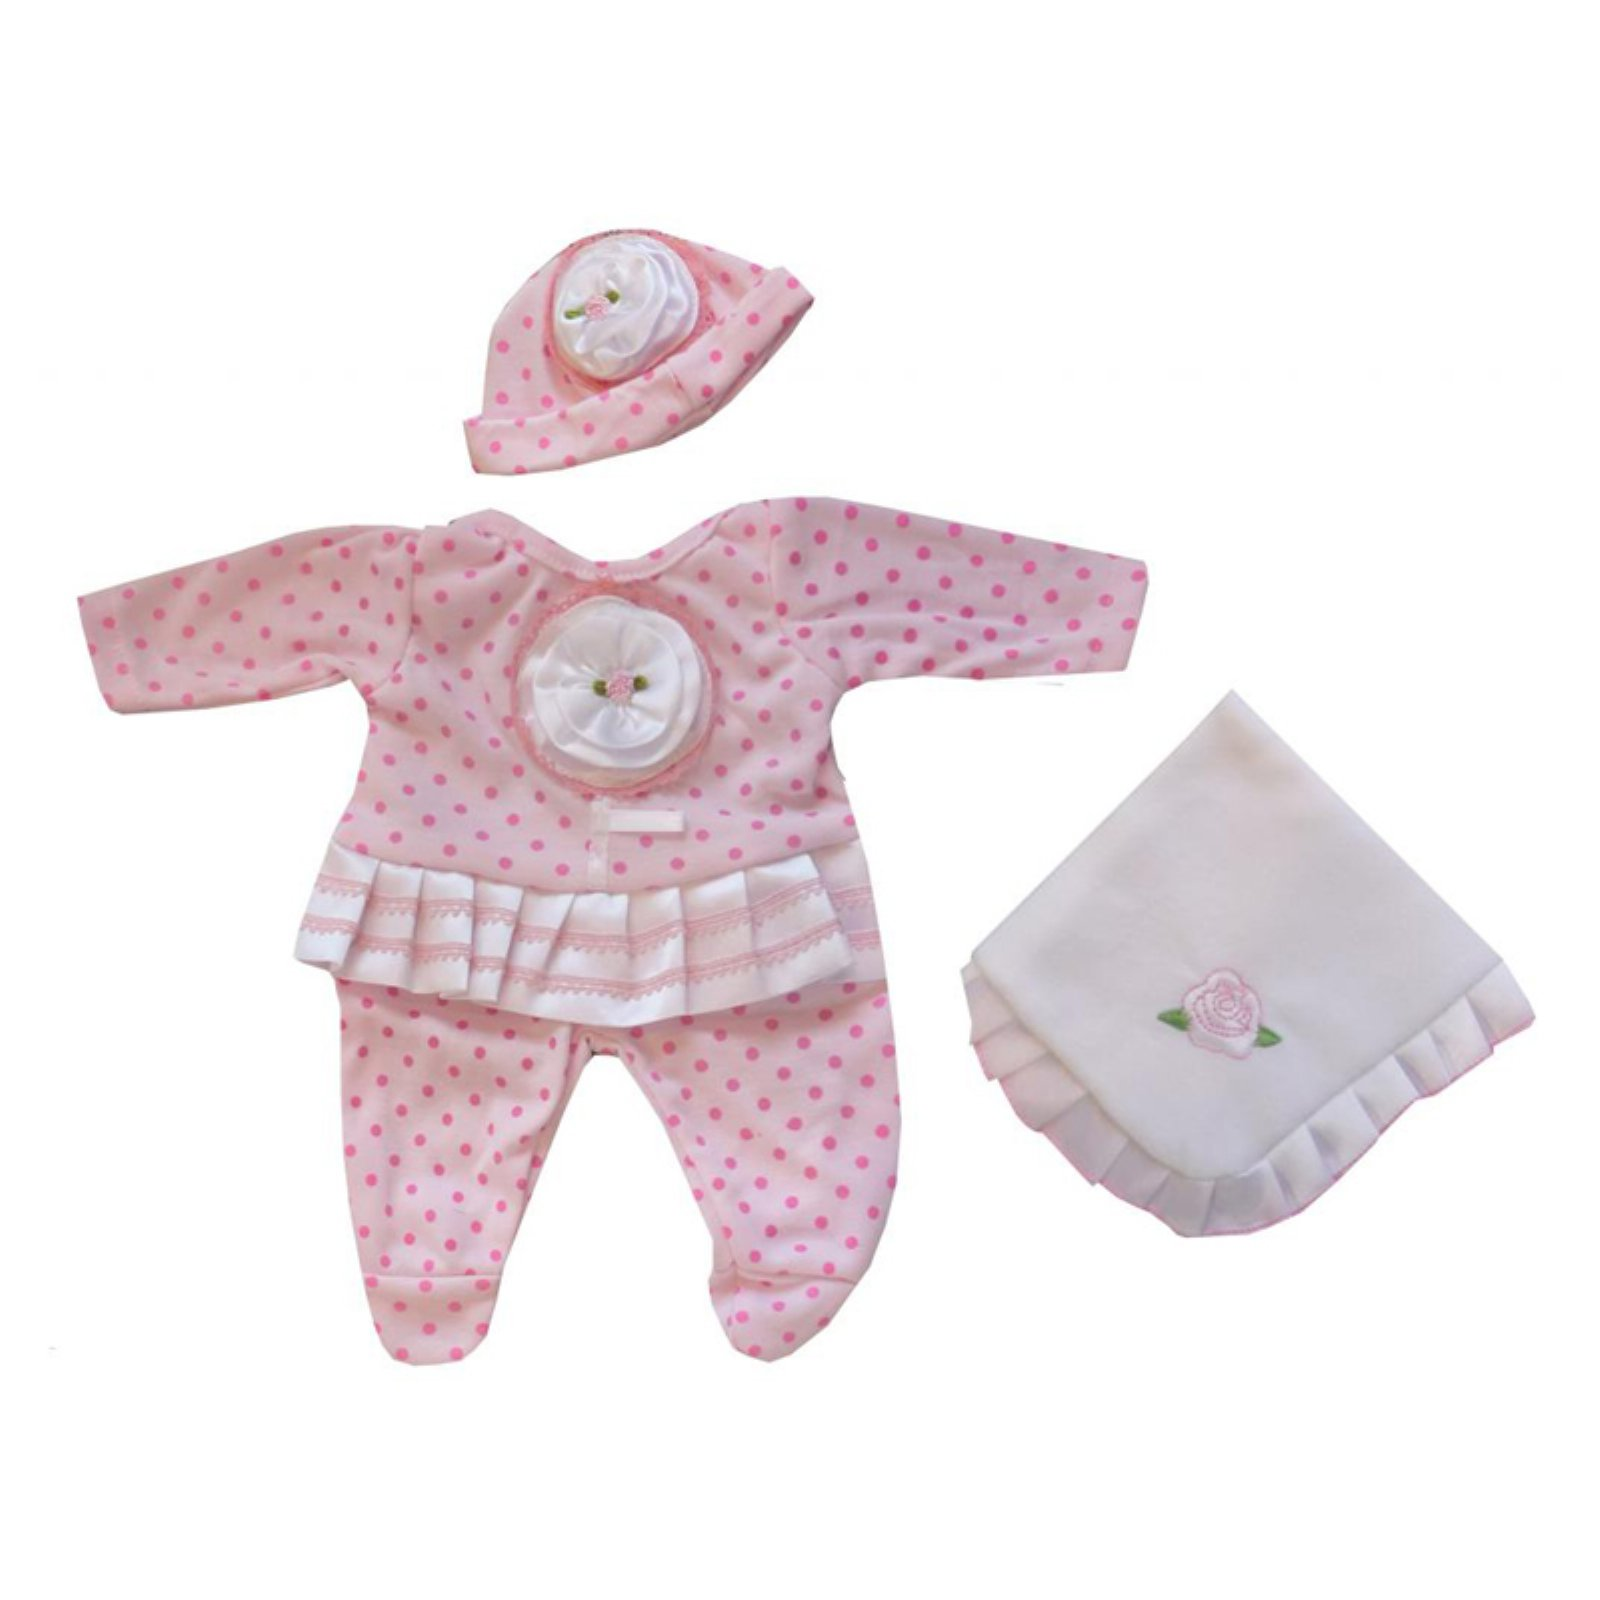 Molly P. Tina 16 in. Doll Outfit